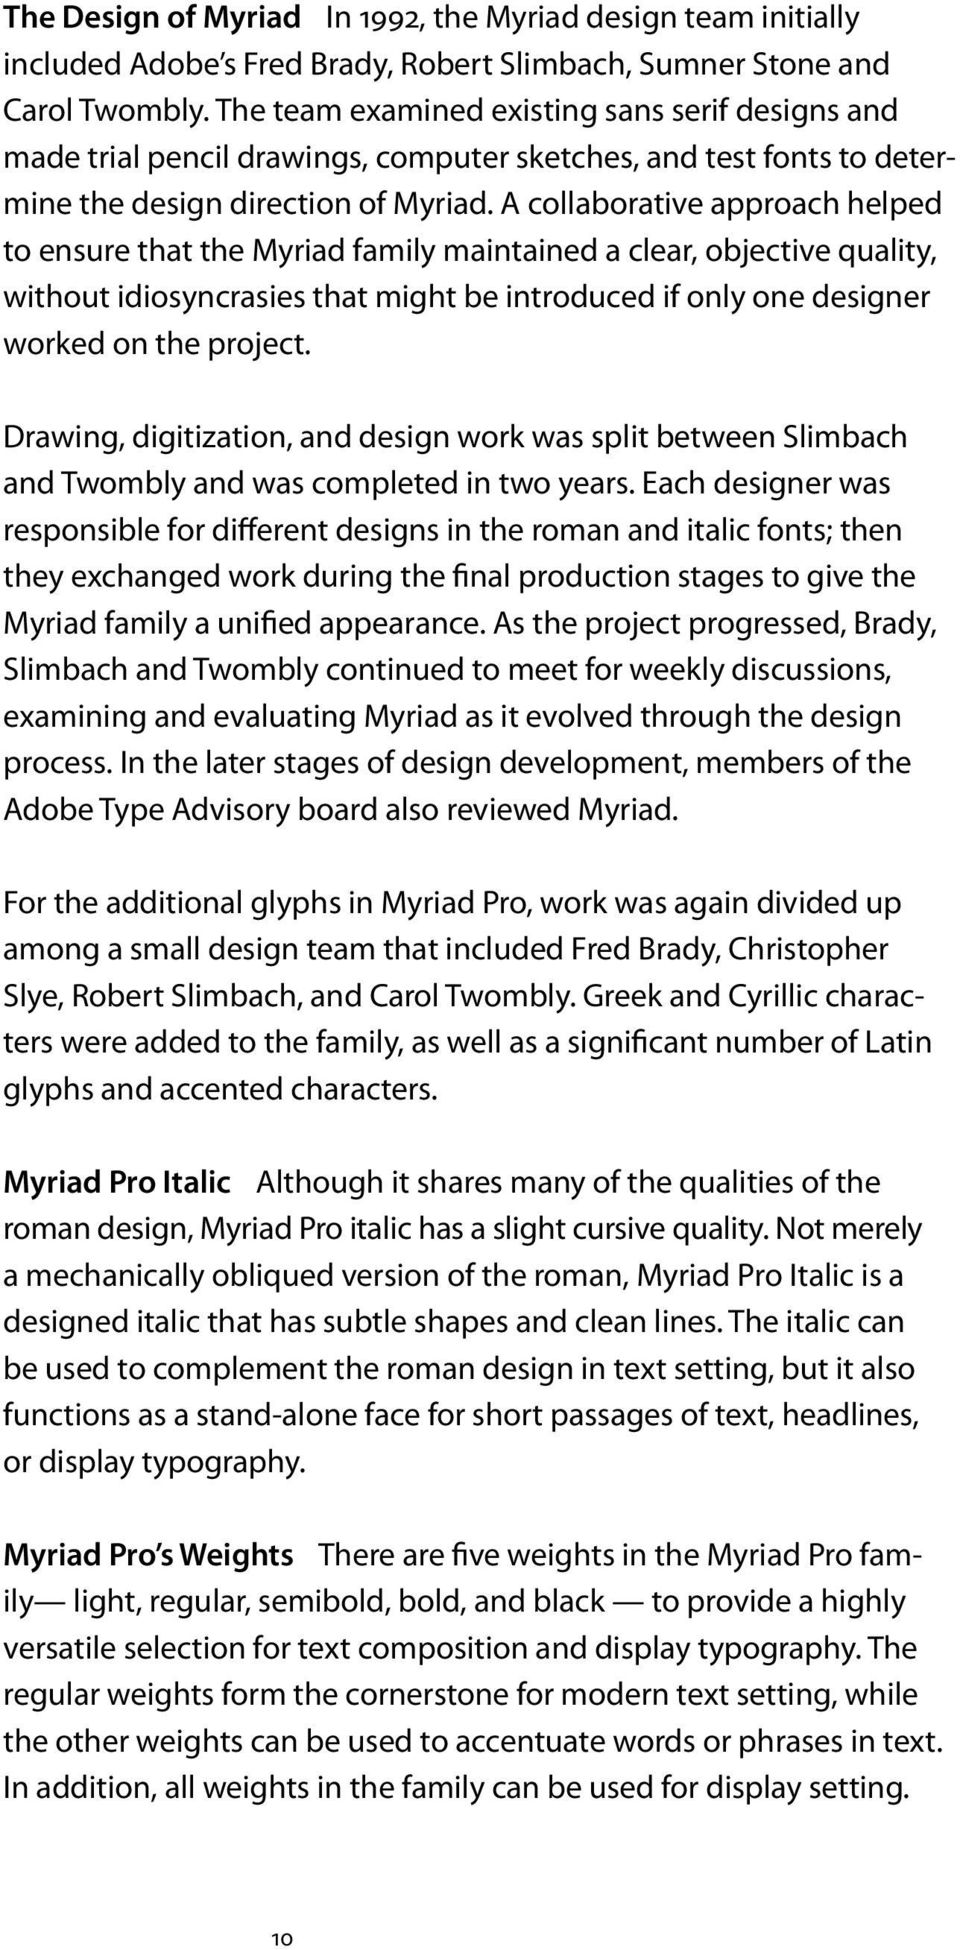 A collaborative approach helped to ensure that the Myriad family maintained a clear, objective quality, without idiosyncrasies that might be introduced if only one designer worked on the project.